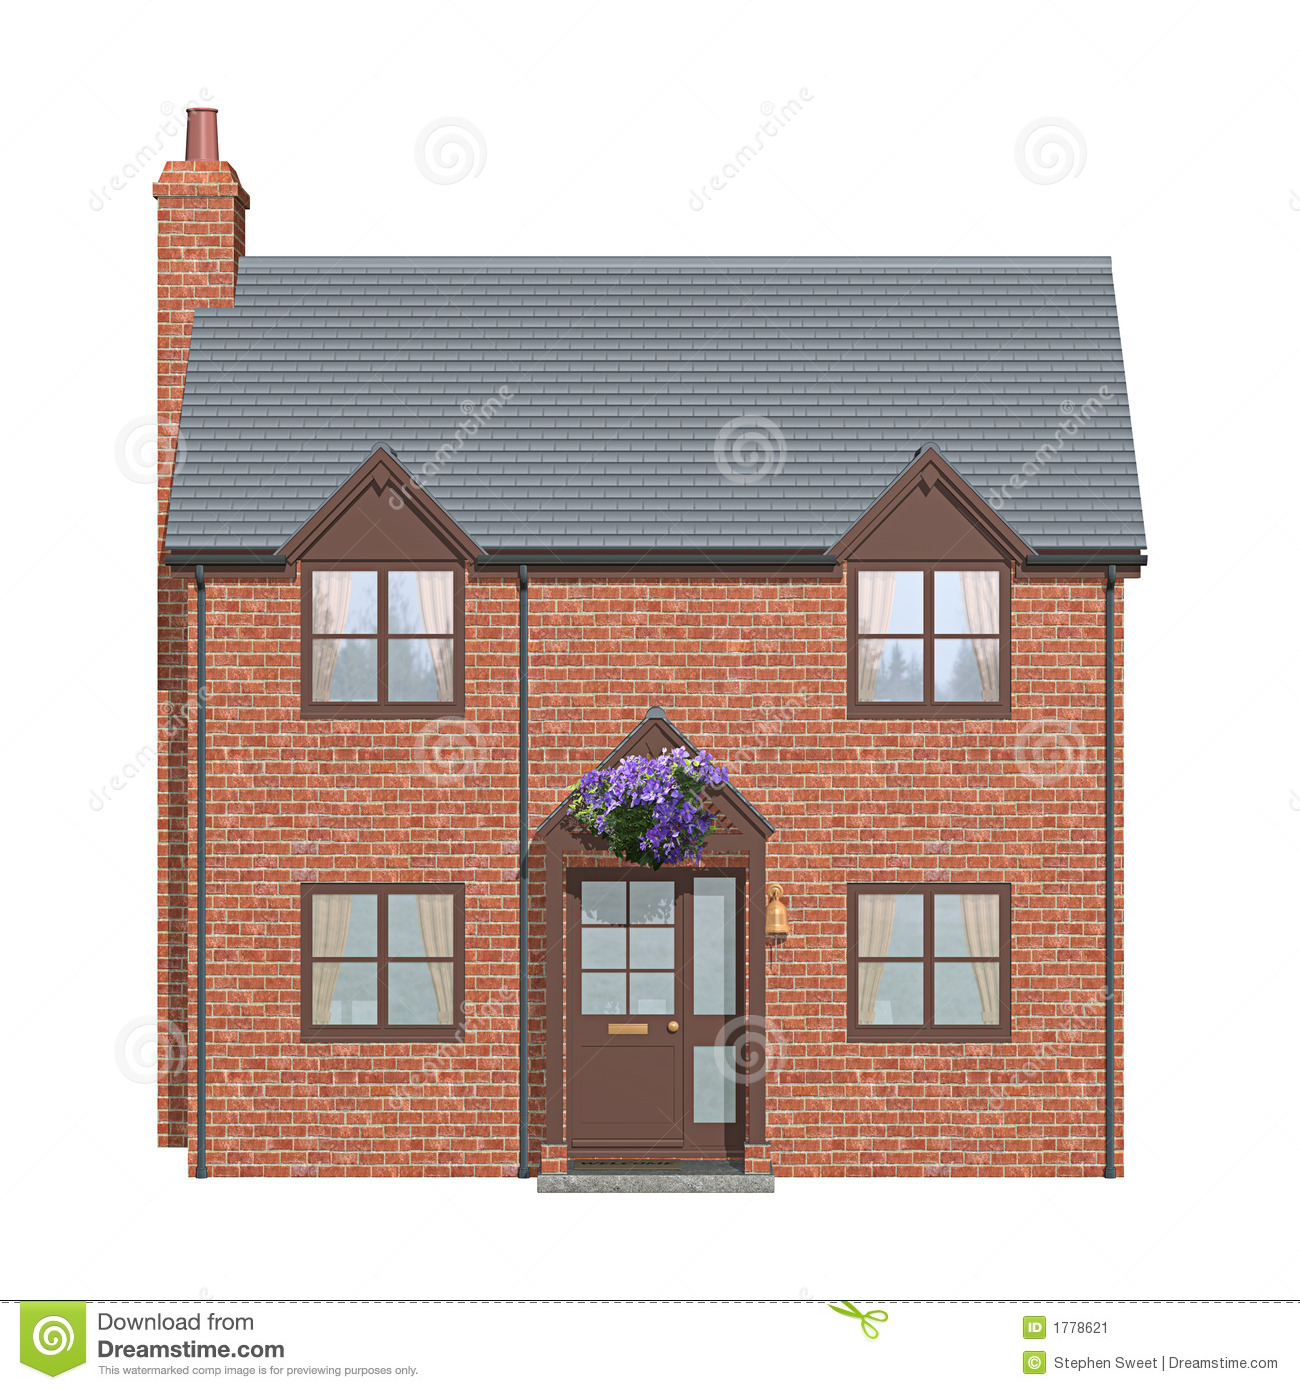 More similar stock images of ` House Front Elevation `